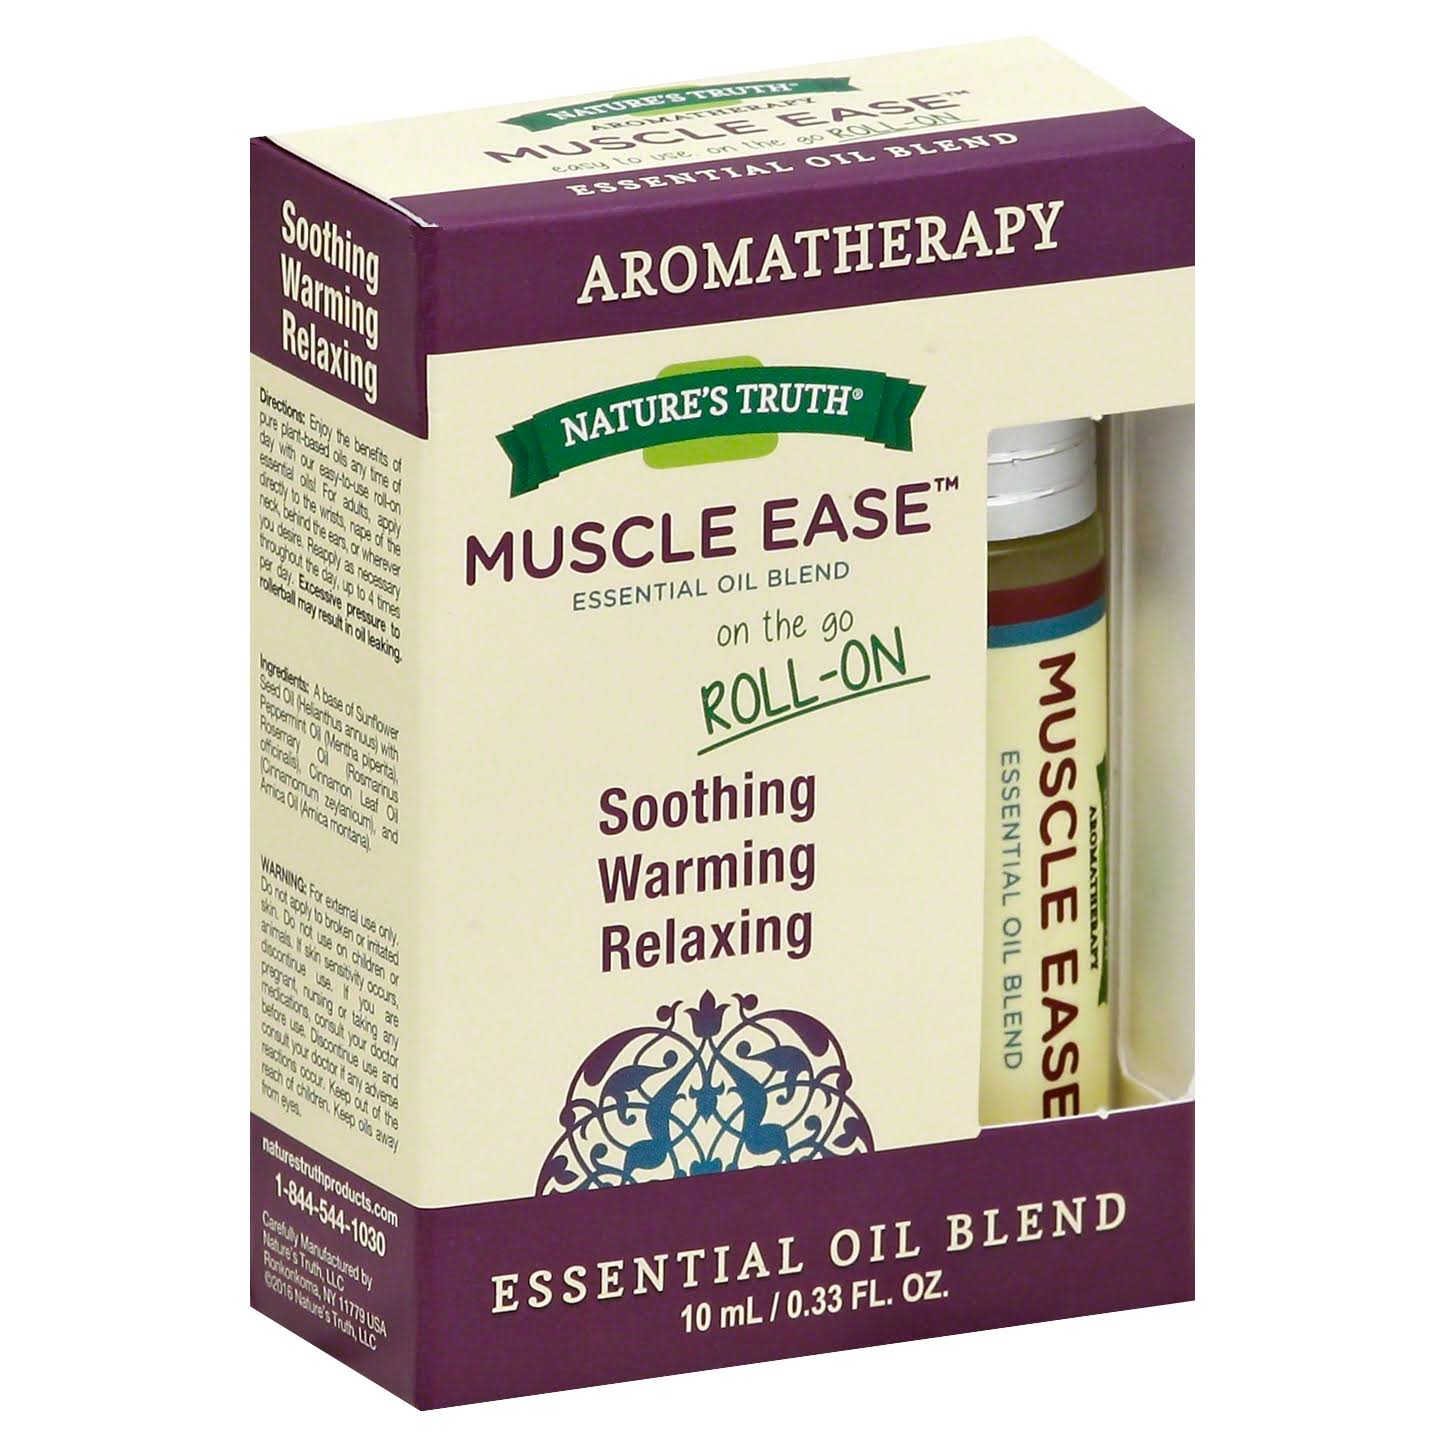 Nature's Truth Muscle Ease Aromatherapy Essential Oil Blend - 10ml